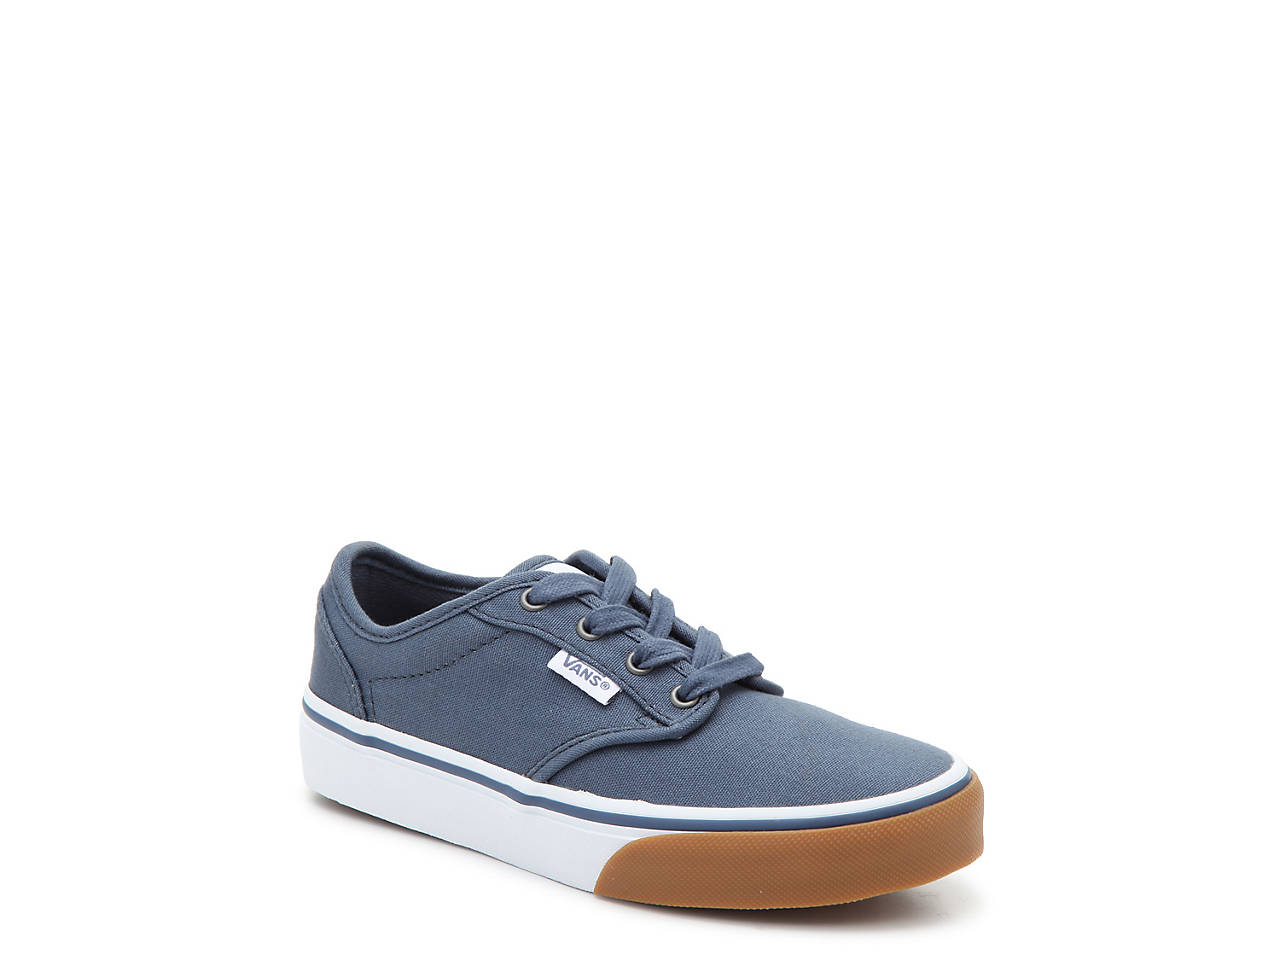 170afd94a04 Vans Atwood Toddler   Youth Sneaker Kids Shoes